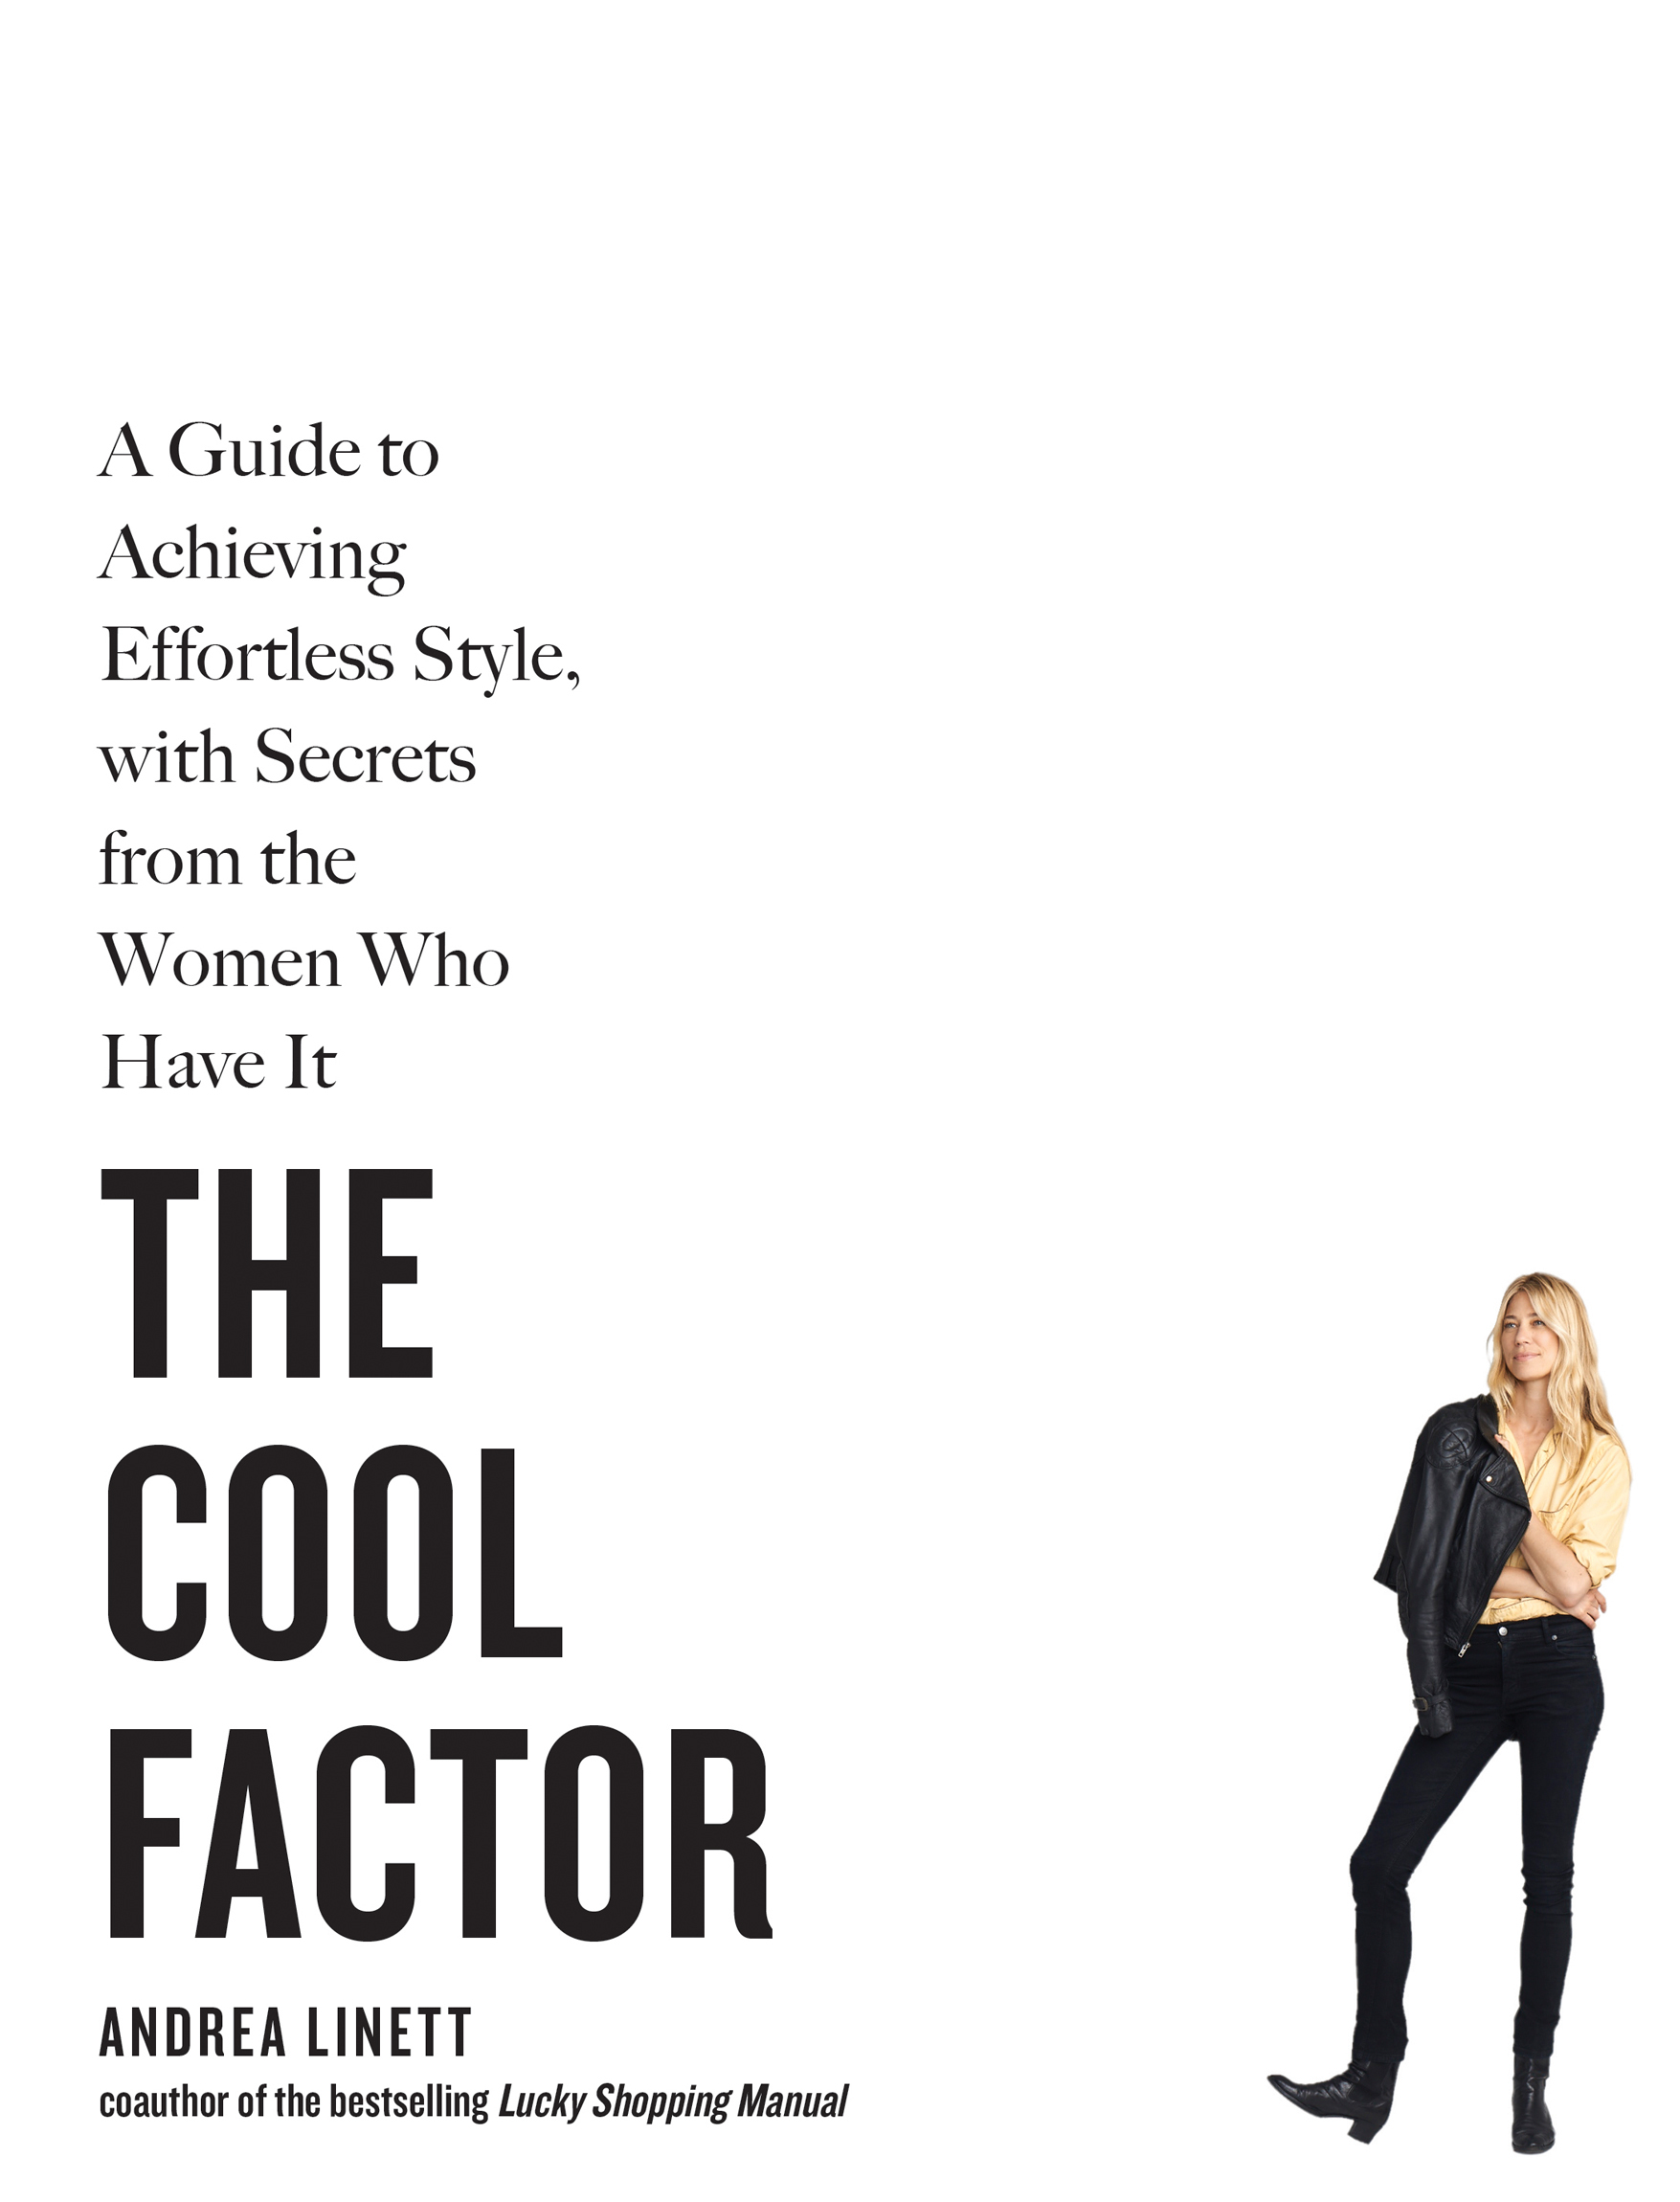 The Cool Factor: Styling Secrets from the Women Who Have It Andrea Linett